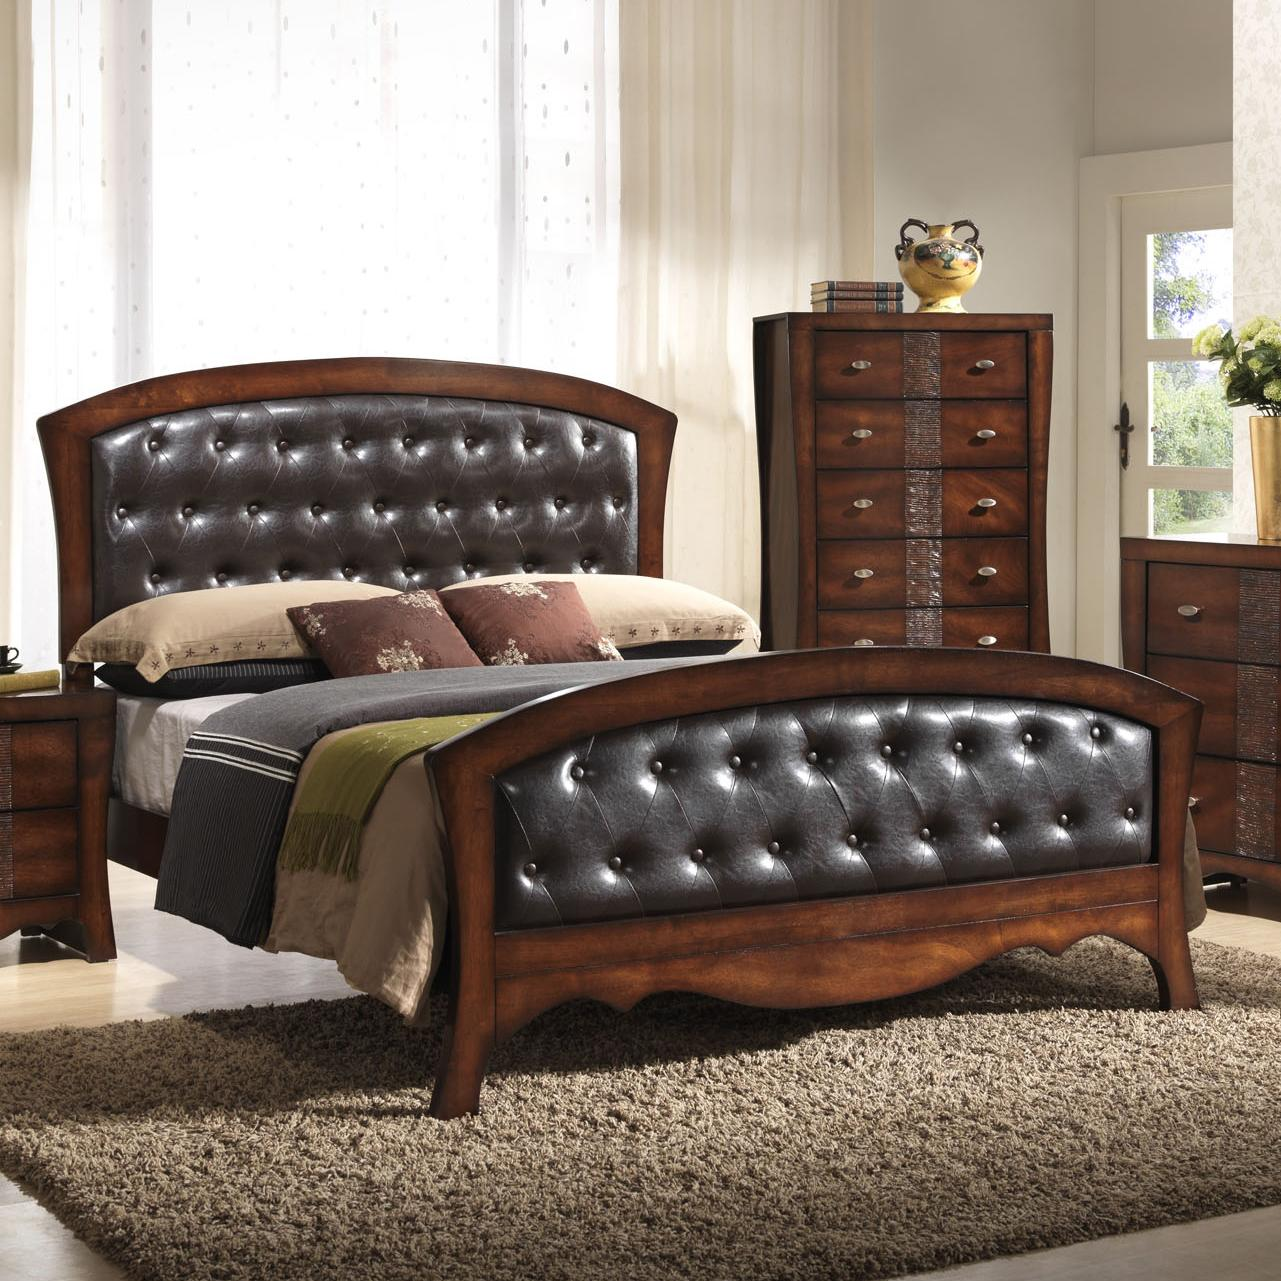 elements jenny queen panel bed with upholstered headboard and footboard royal furniture. Black Bedroom Furniture Sets. Home Design Ideas